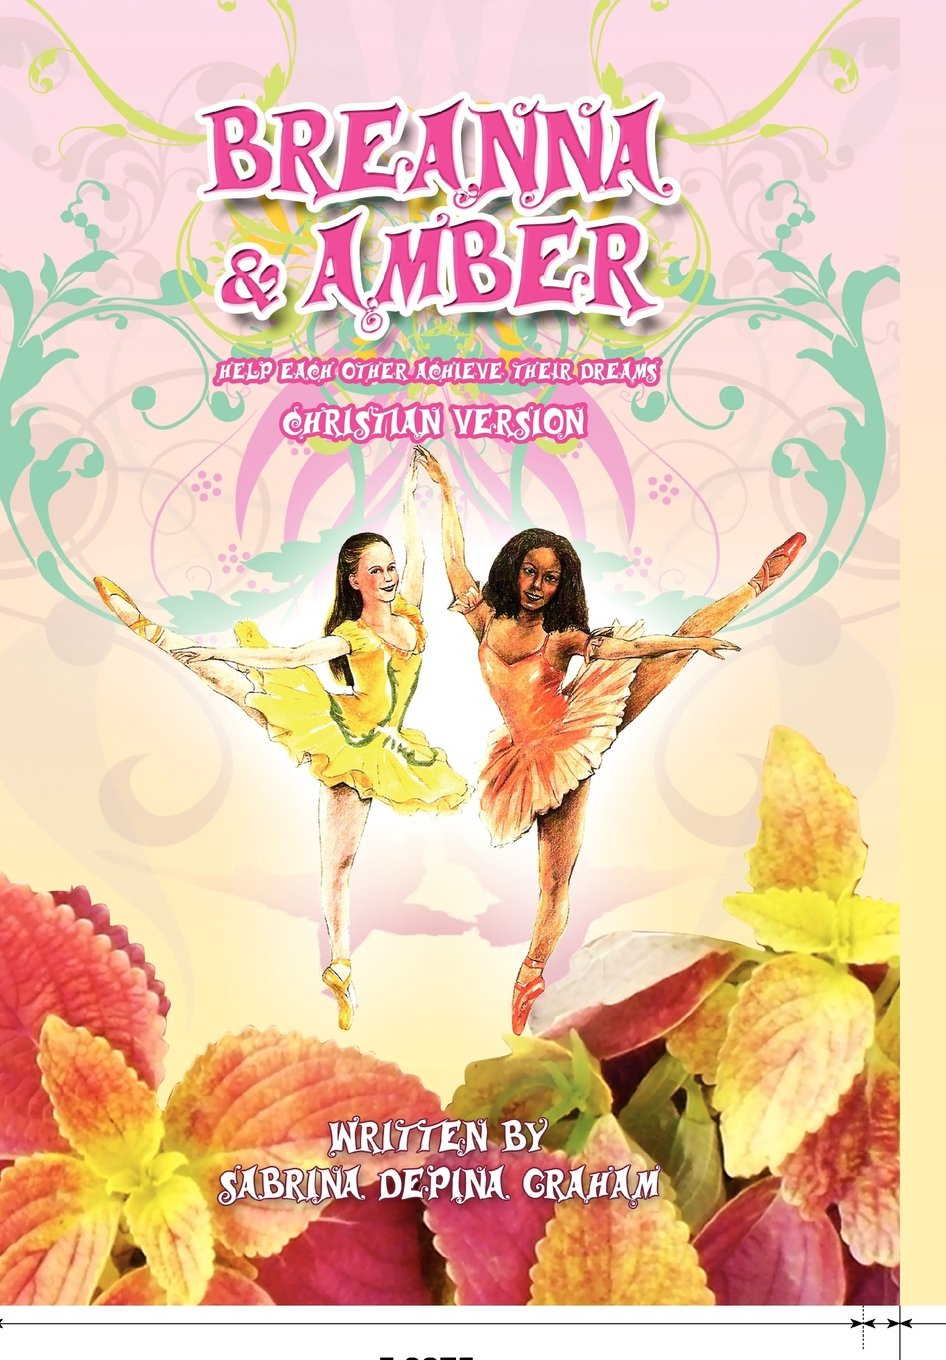 Read Online Breanna and Amber: Help Each Other Achieve Their Dreams (Christian Version) pdf epub